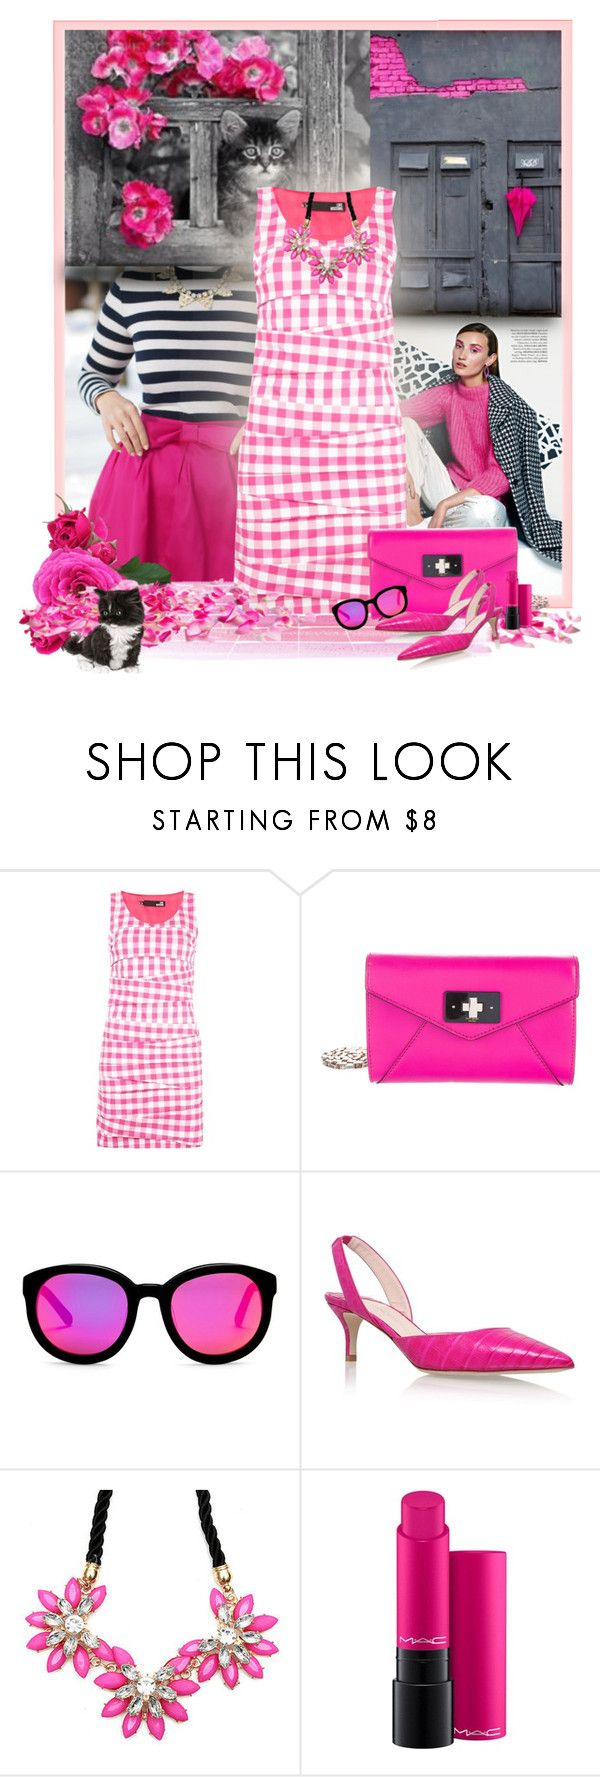 """""""Gingham Style"""" by loveroses123 ❤ liked on Polyvore featuring Love Moschino, Kate Spade, AQS by Aquaswiss, Nancy Gonzalez and MAC Cosmetics"""